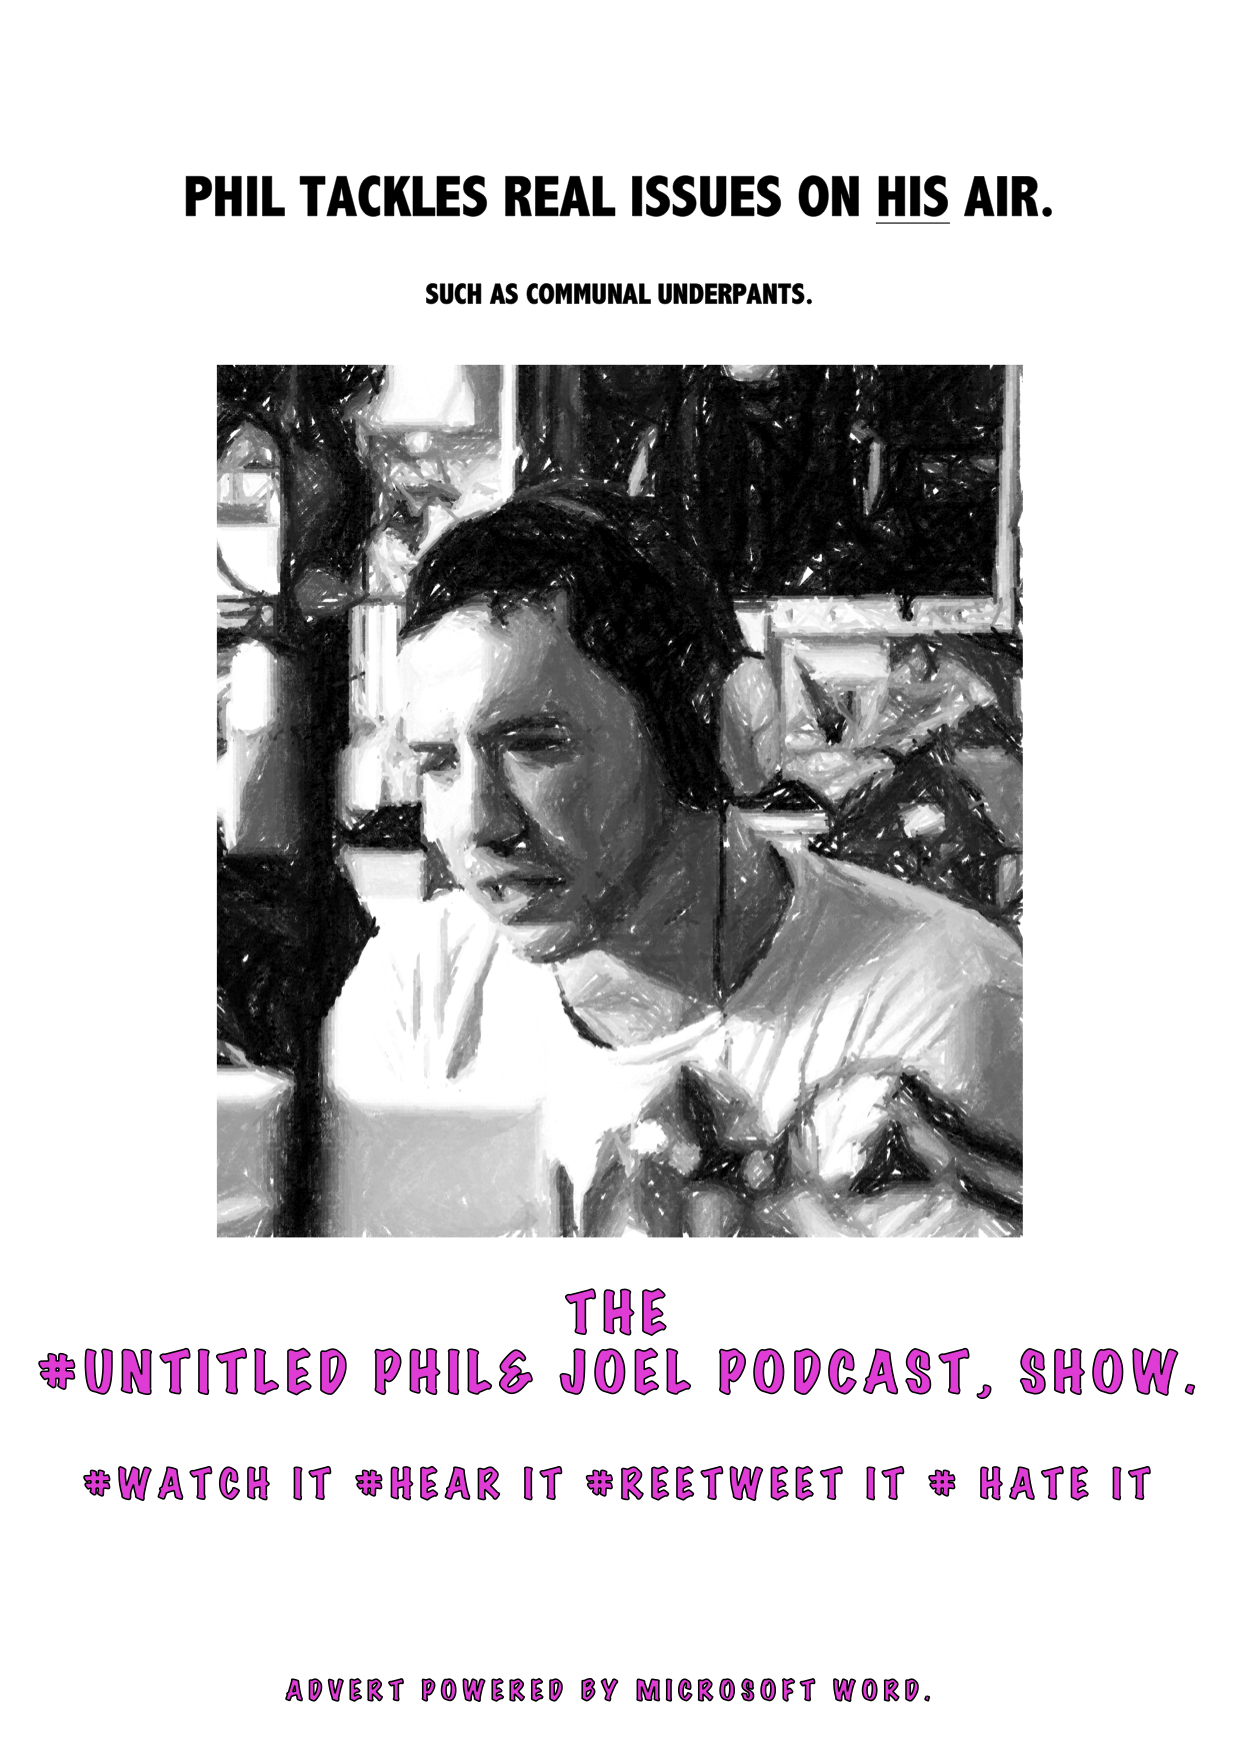 THE UNTITLED PHIL & JOEL PODCAST SHOW - Phil and Joel are two down and out podcasters, looking to strike it LARGE in the world of vlogging, or podcasting, whichever comes first.Watch the first series here.